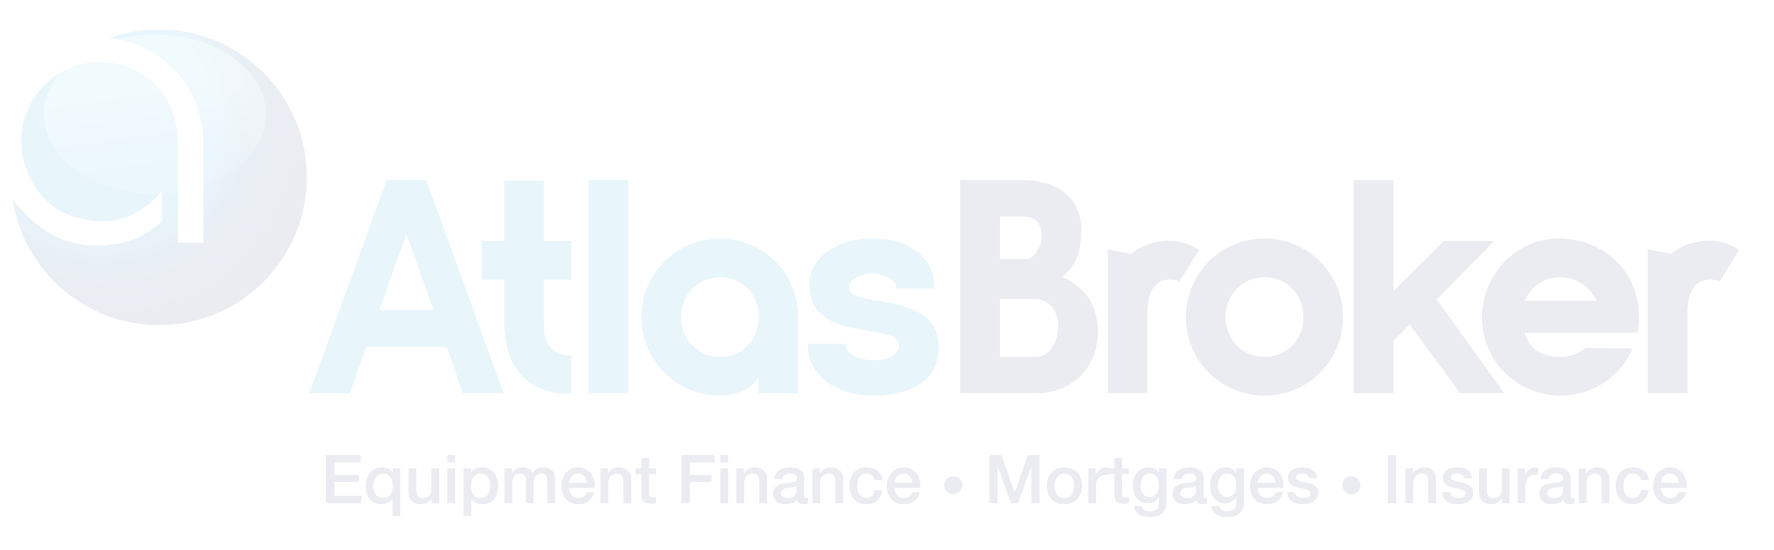 Atlas Brokers - Equipment Finance, Mortgages, Insurance